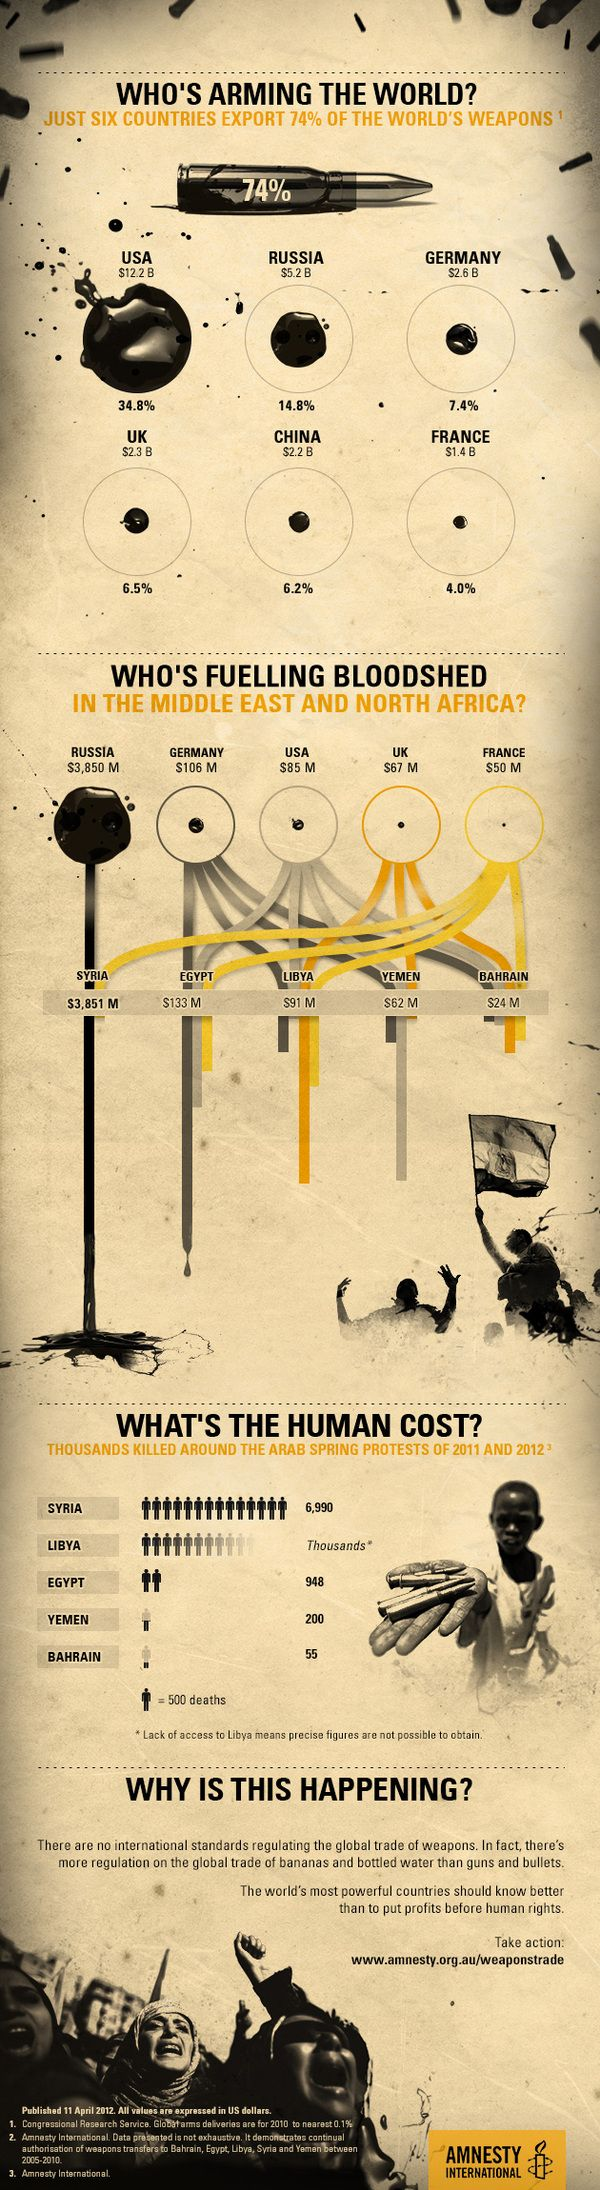 Who's Arming the world?  An infographic for Amnesty International